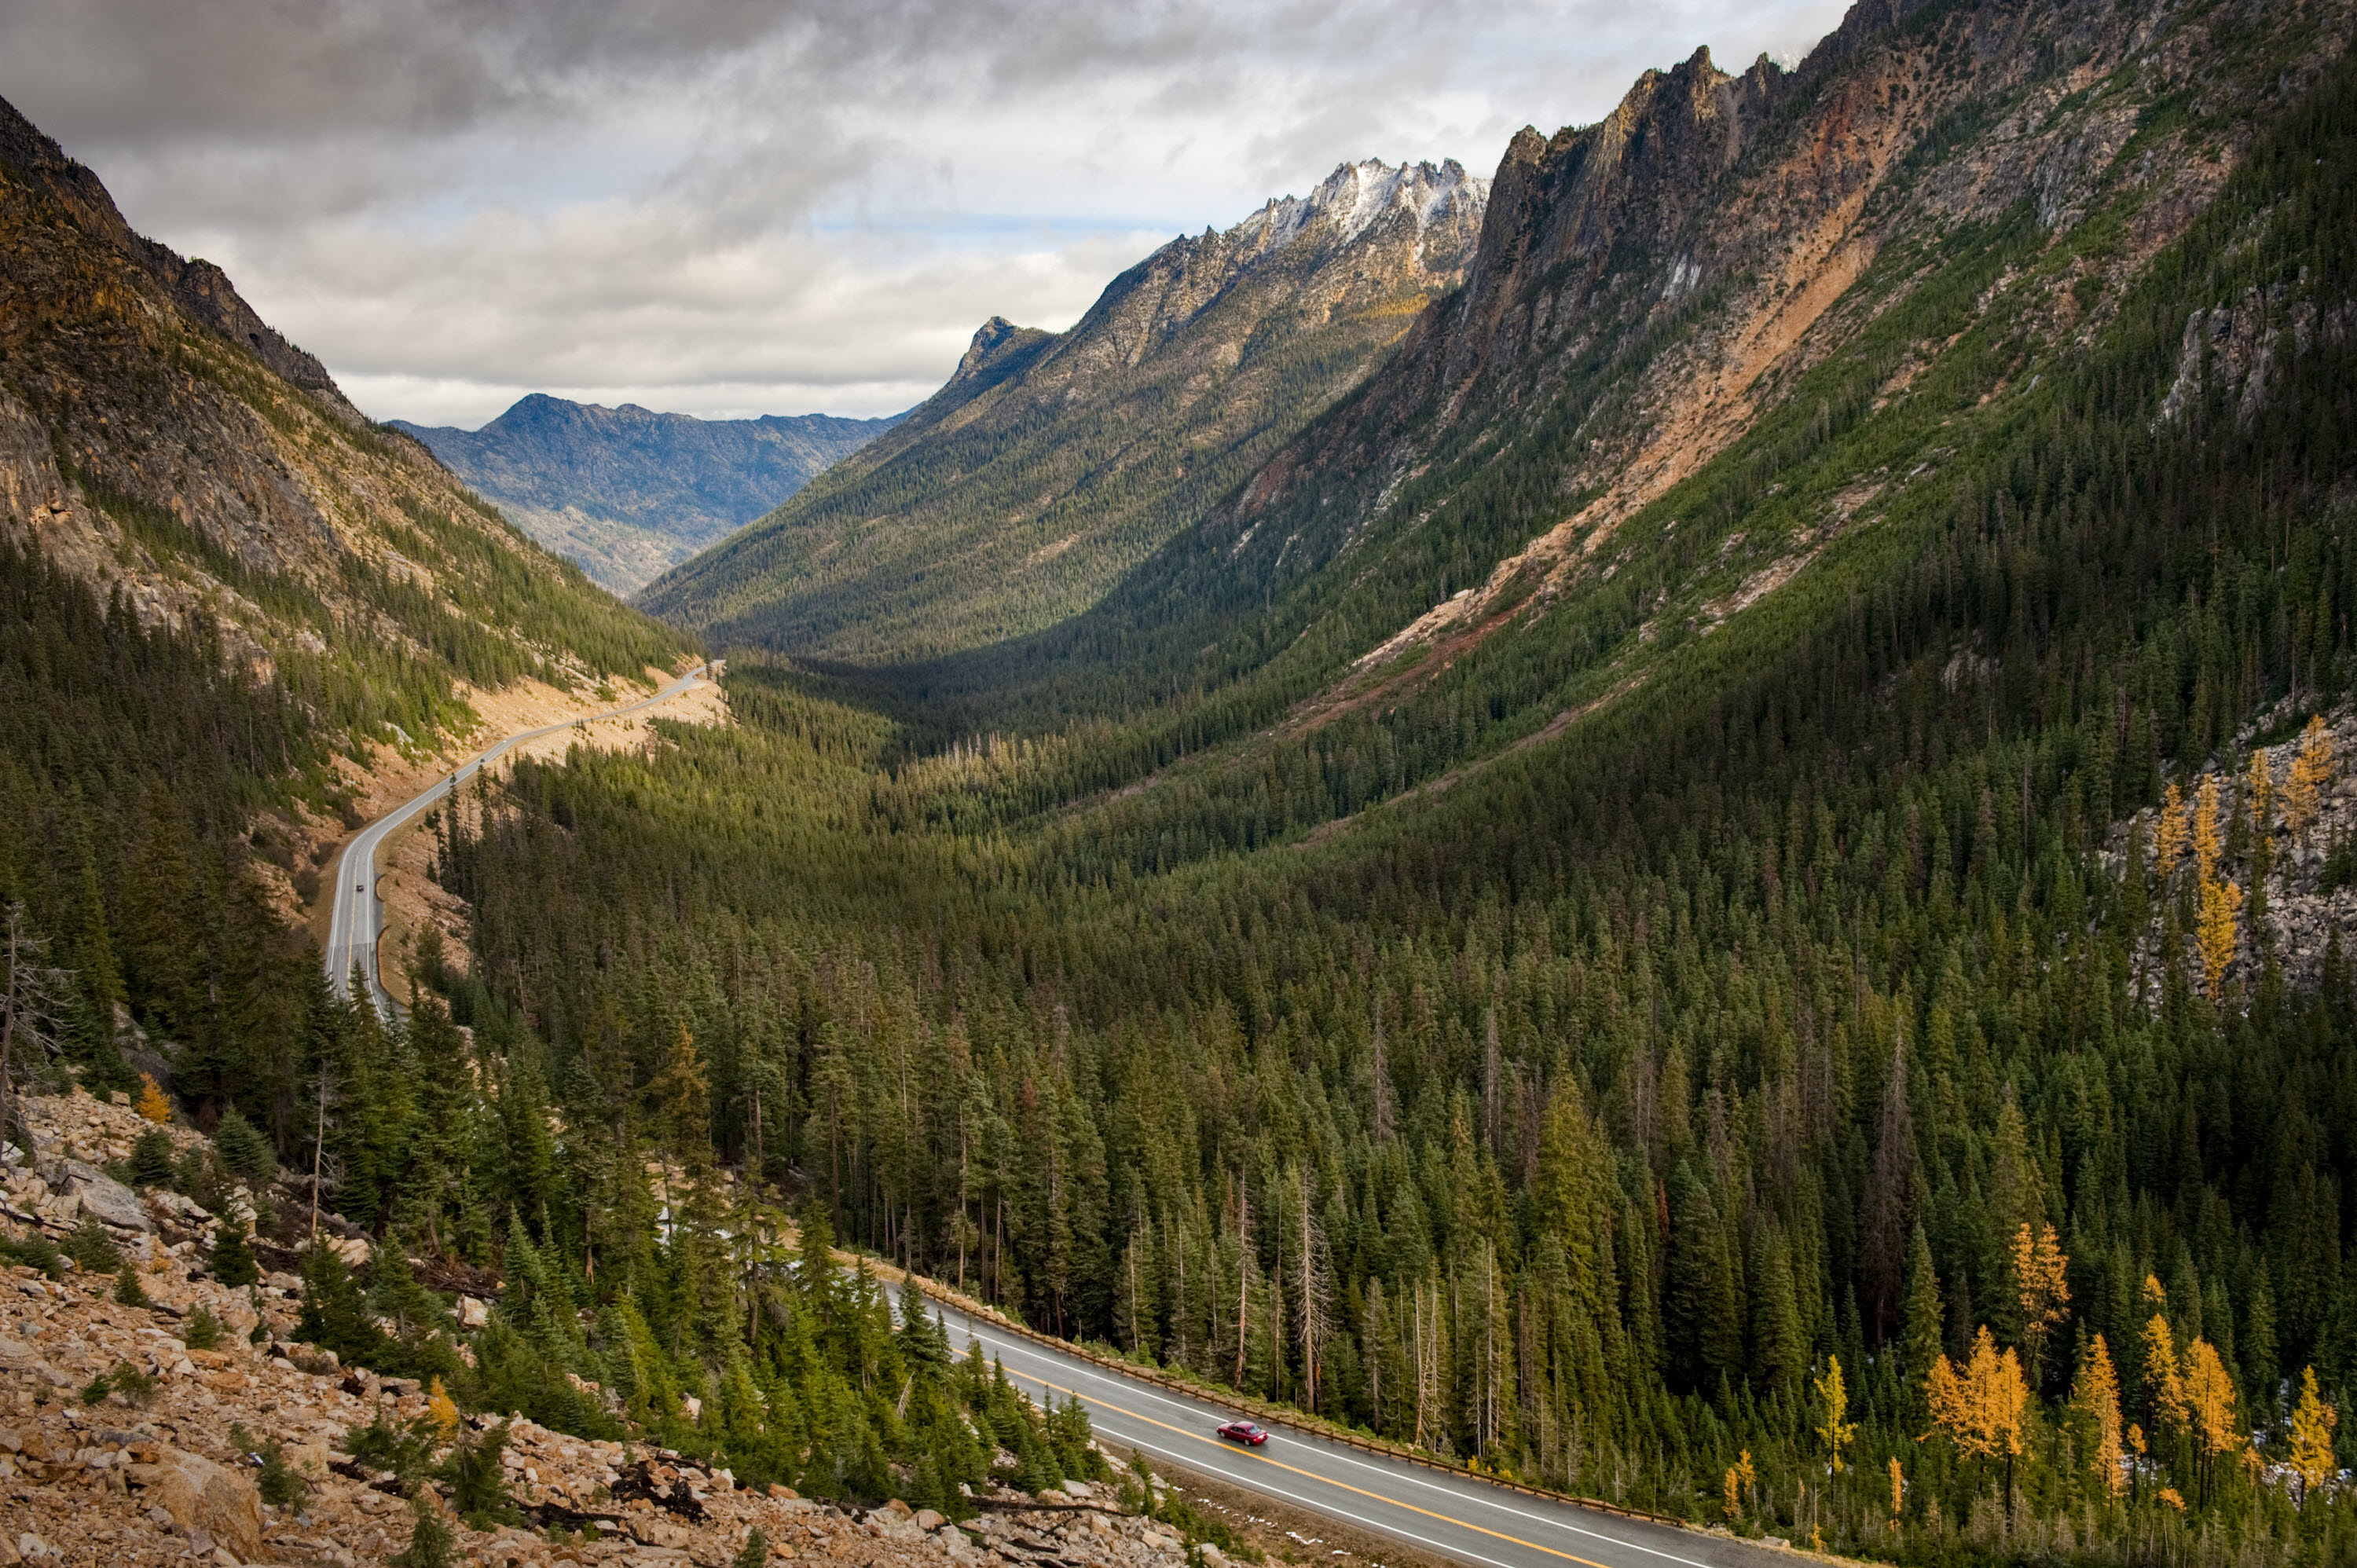 North Cascades Highway in the fall. Photo credit: istockphoto